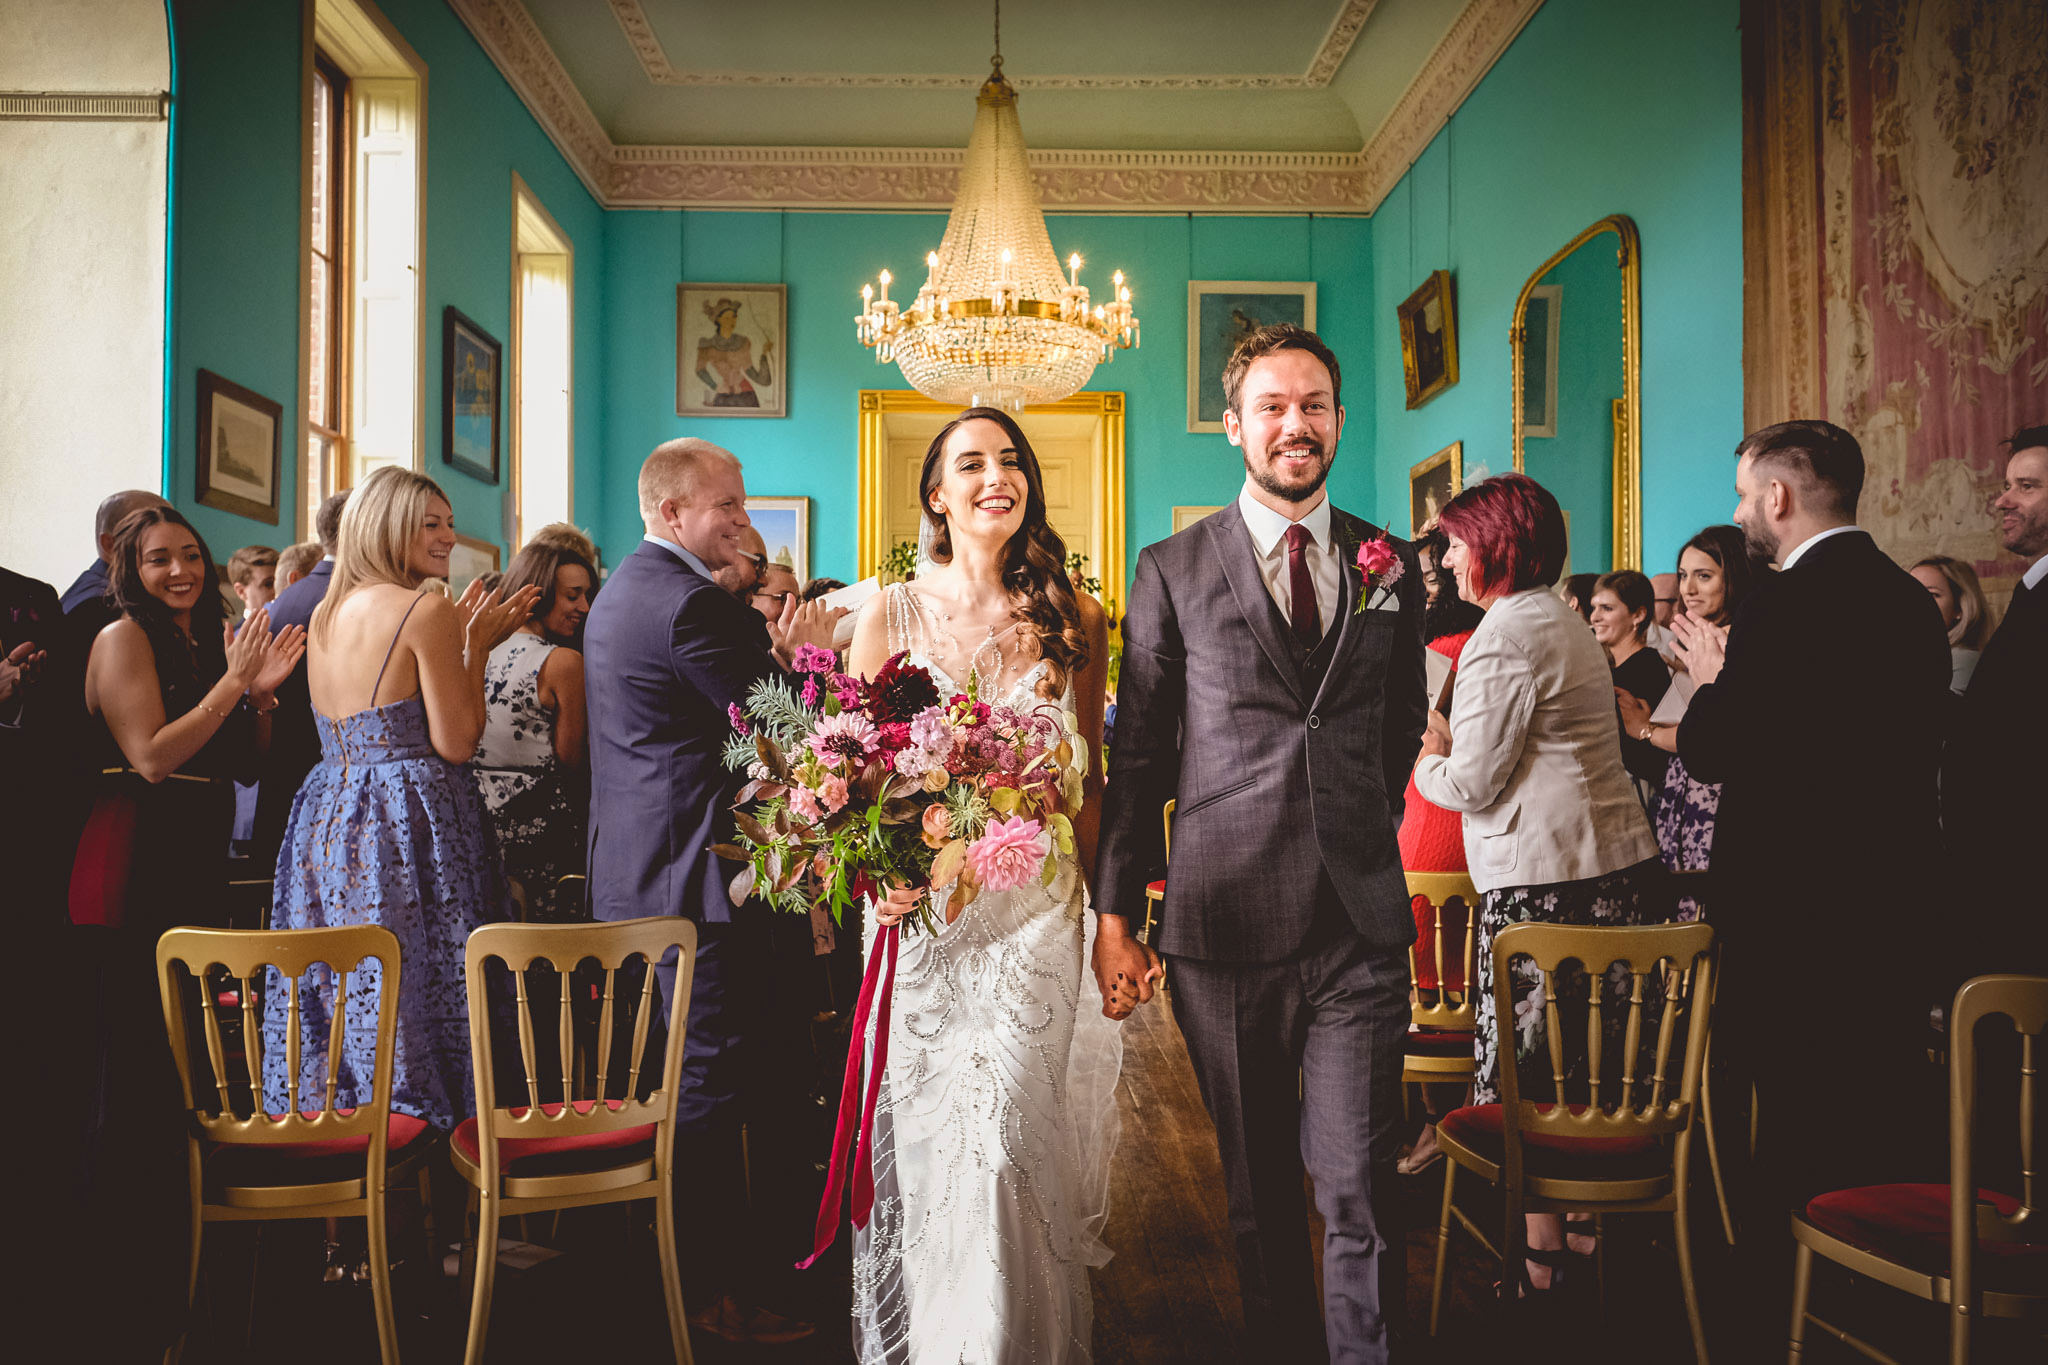 walcot-hall-england-ceremony-room-just-married-couple-photography-andrew-billington